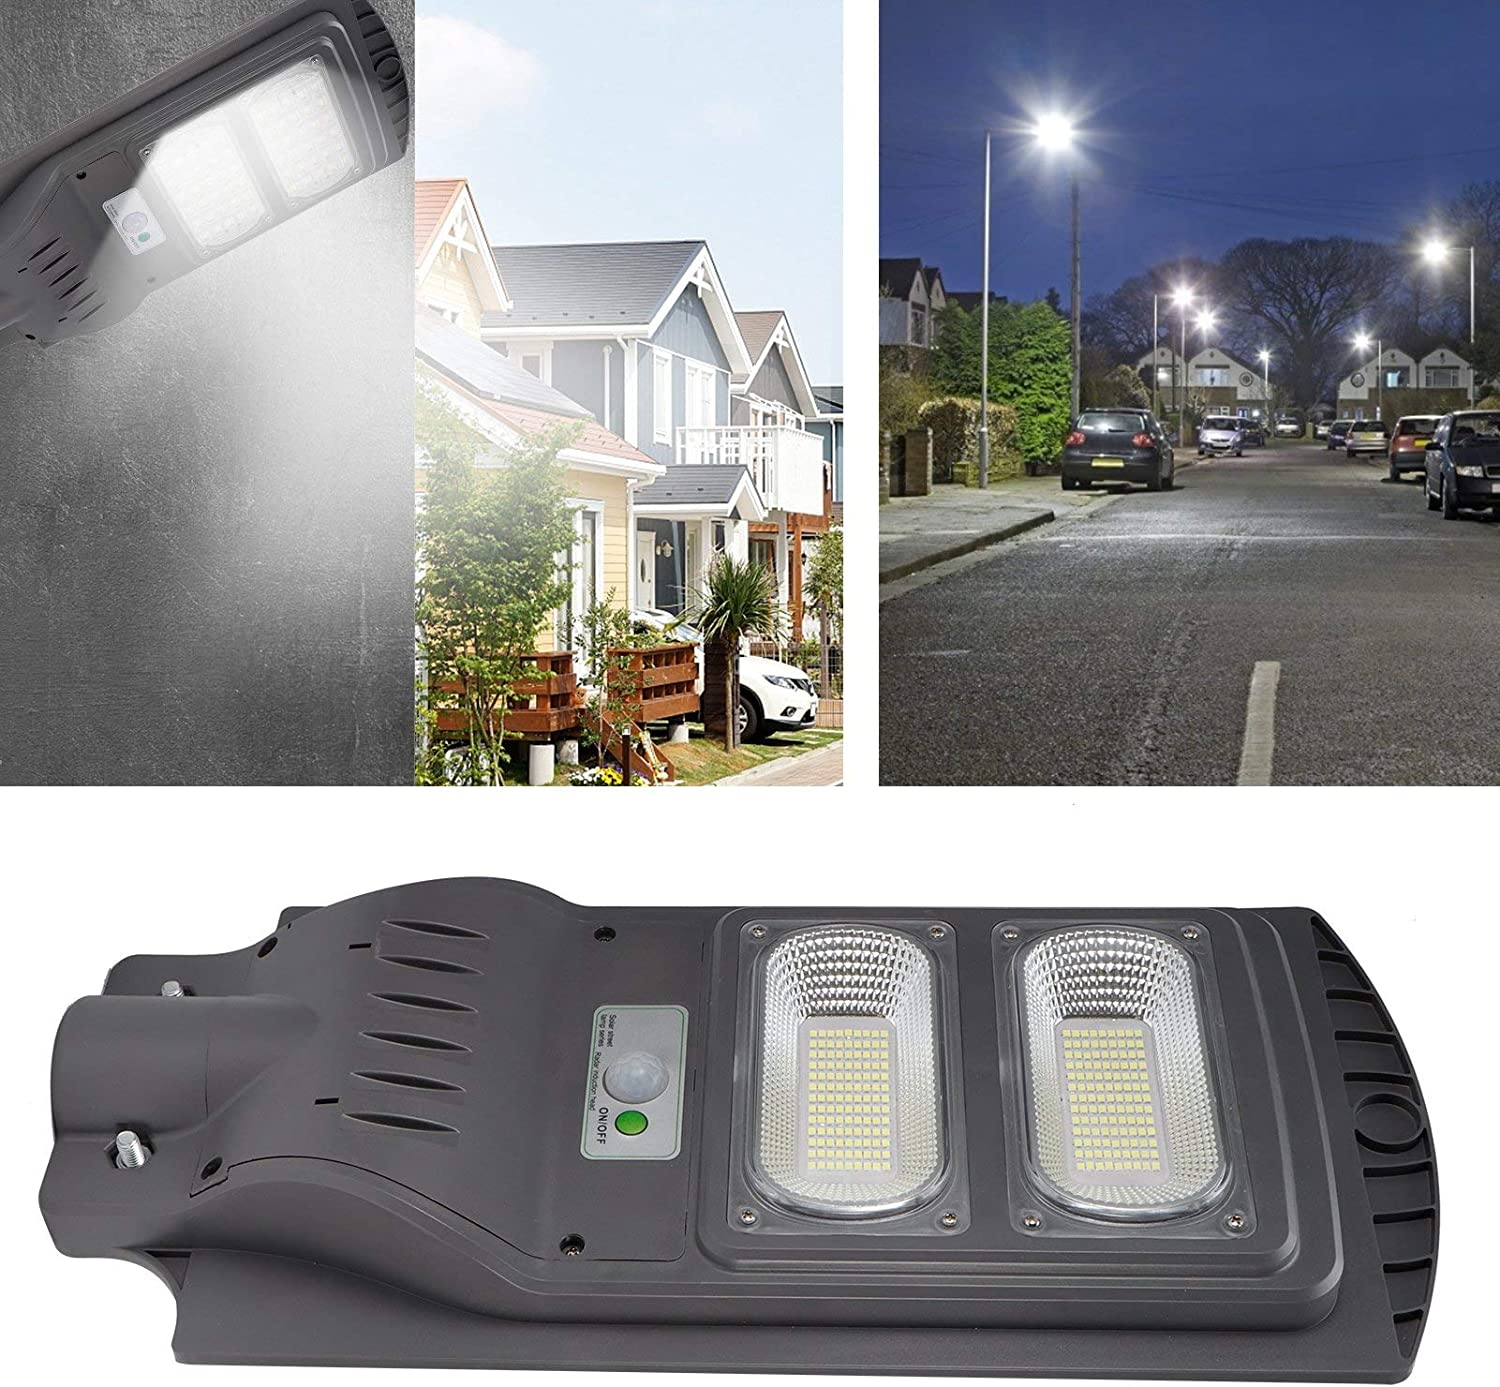 Jacksing Outdoor Lamp Parking Lot Light Brigh 234LED 110W All stores are sold High Brand Cheap Sale Venue